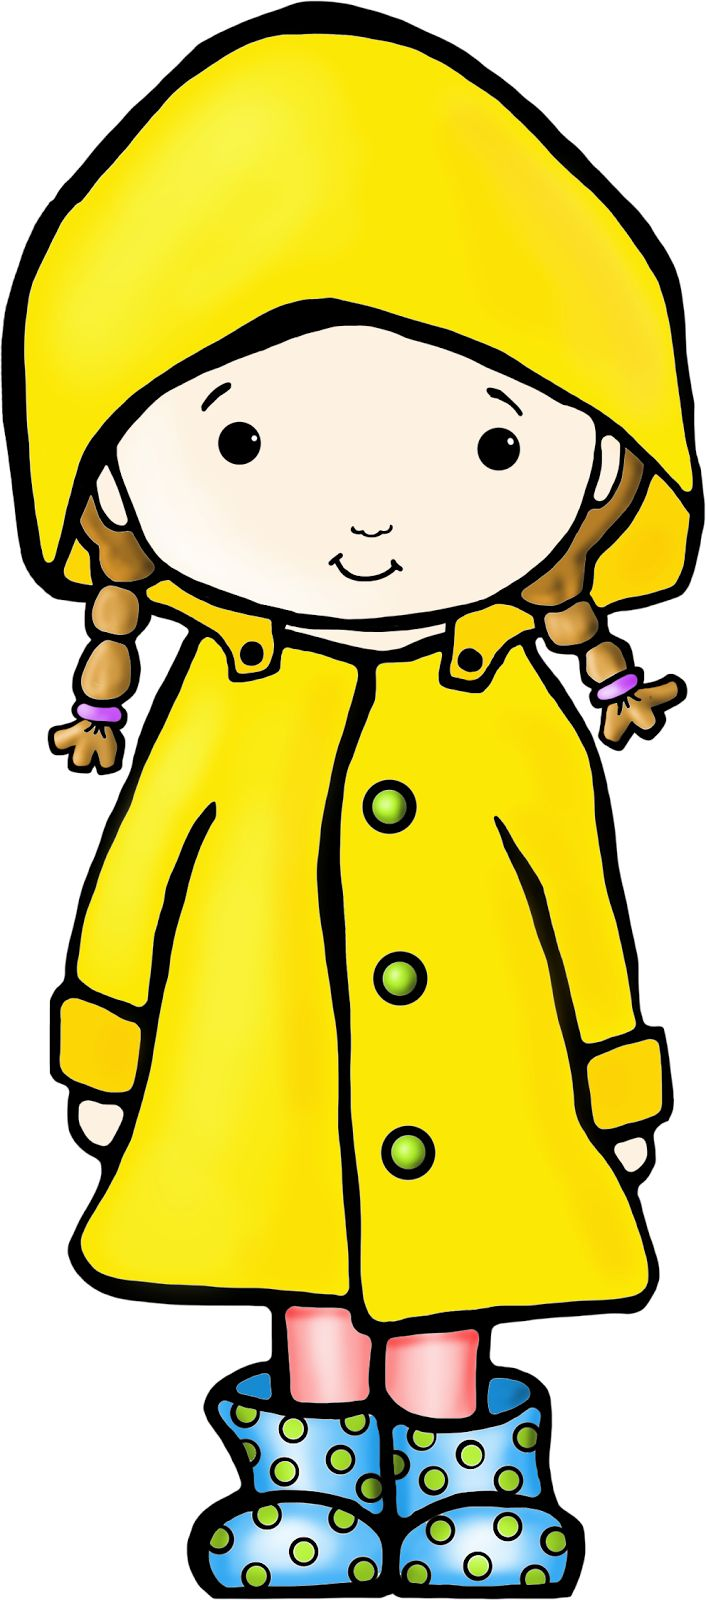 How To Draw A Raincoat   Google Search   Children S Inspirational